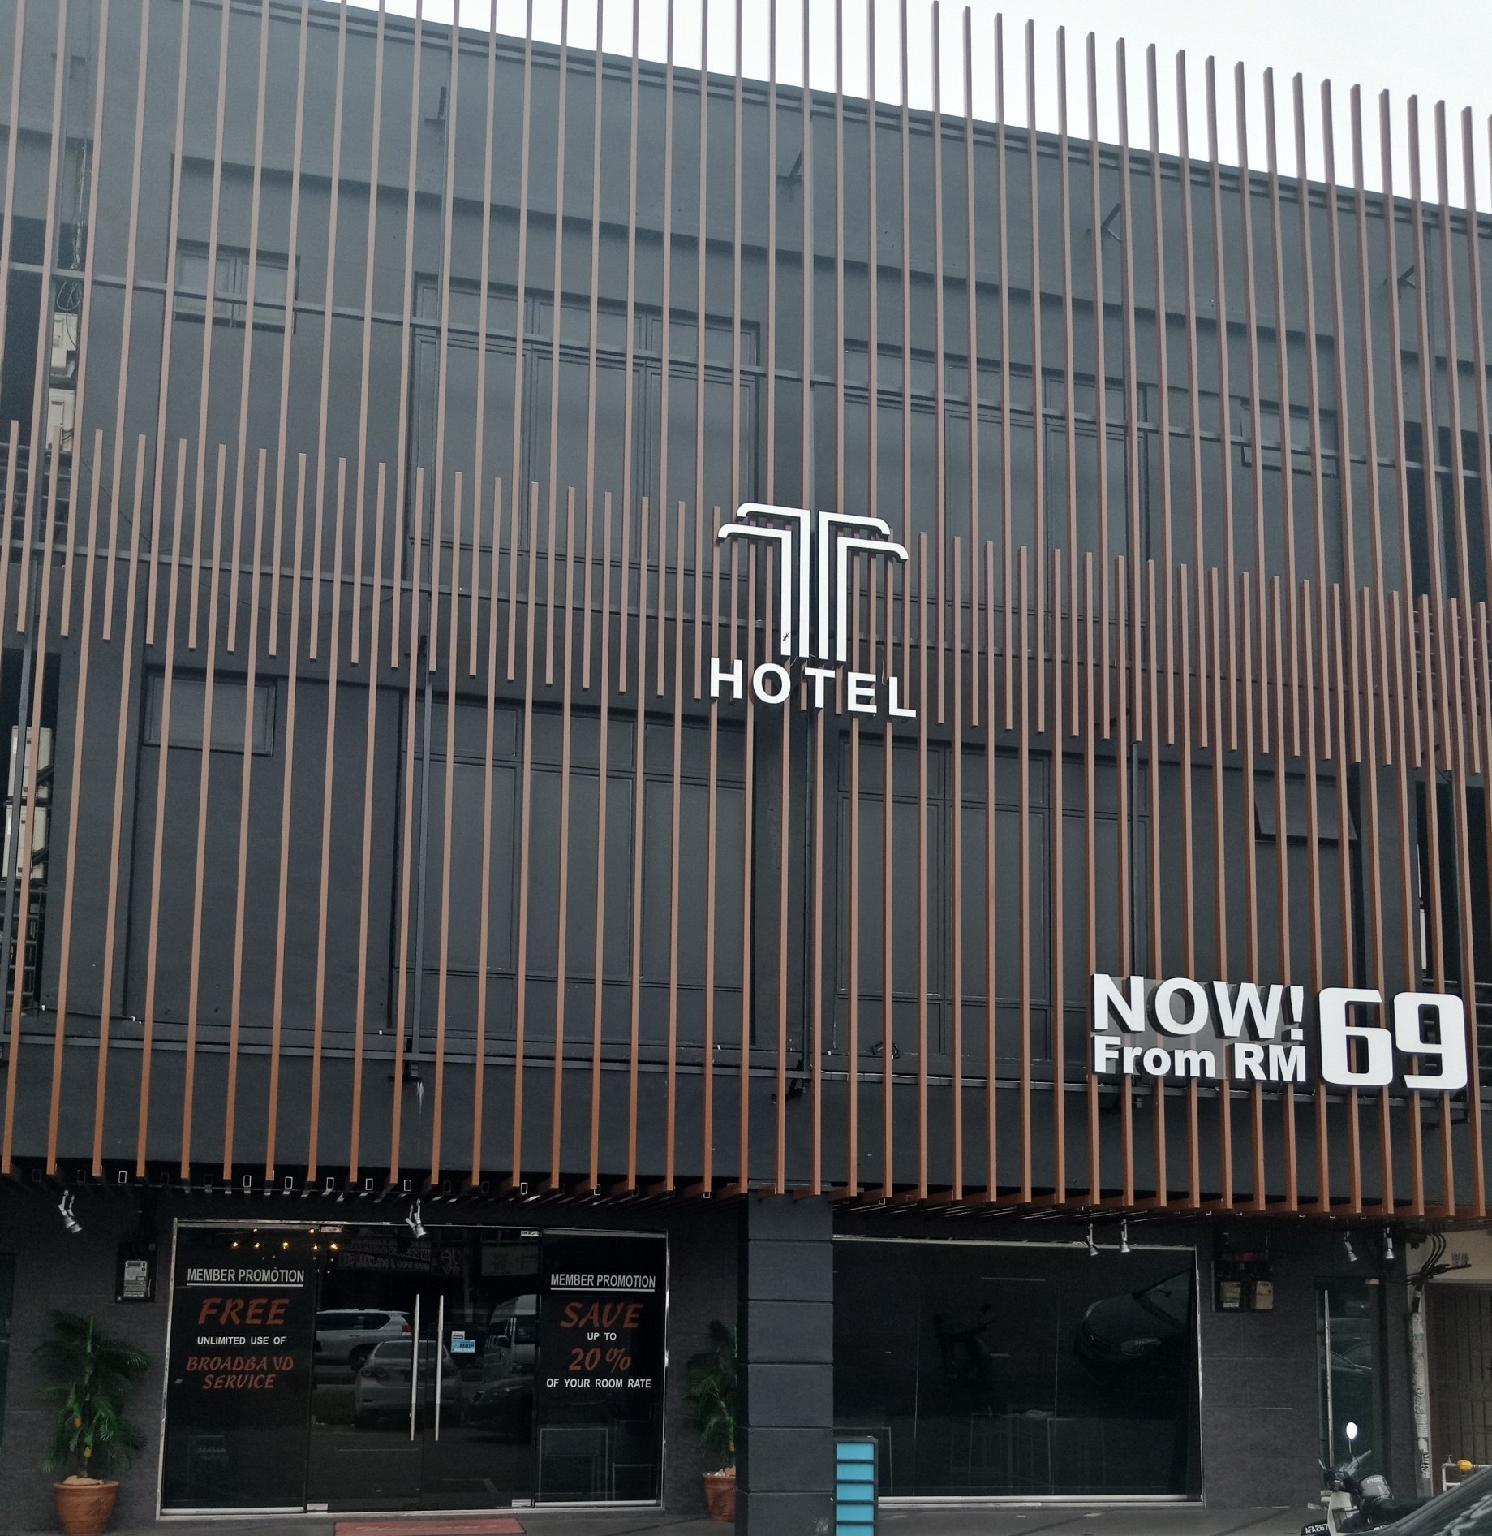 T Hotel Johor Bahru (formerly known as Formerly known as Euro Hotel Skudai), Johor Bahru